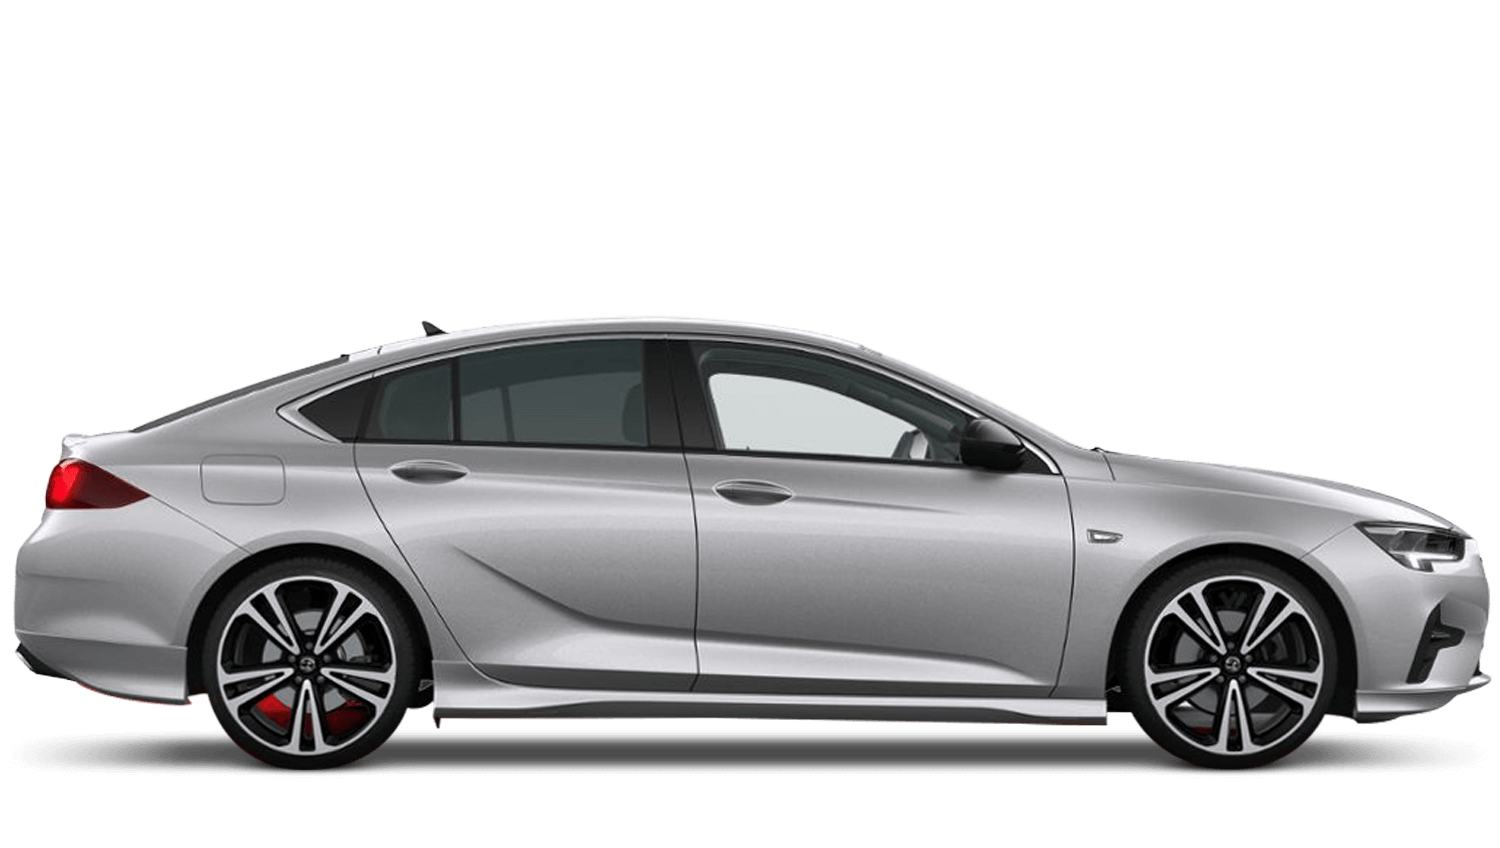 Sovereign Silver (Metallic) New Vauxhall Insignia